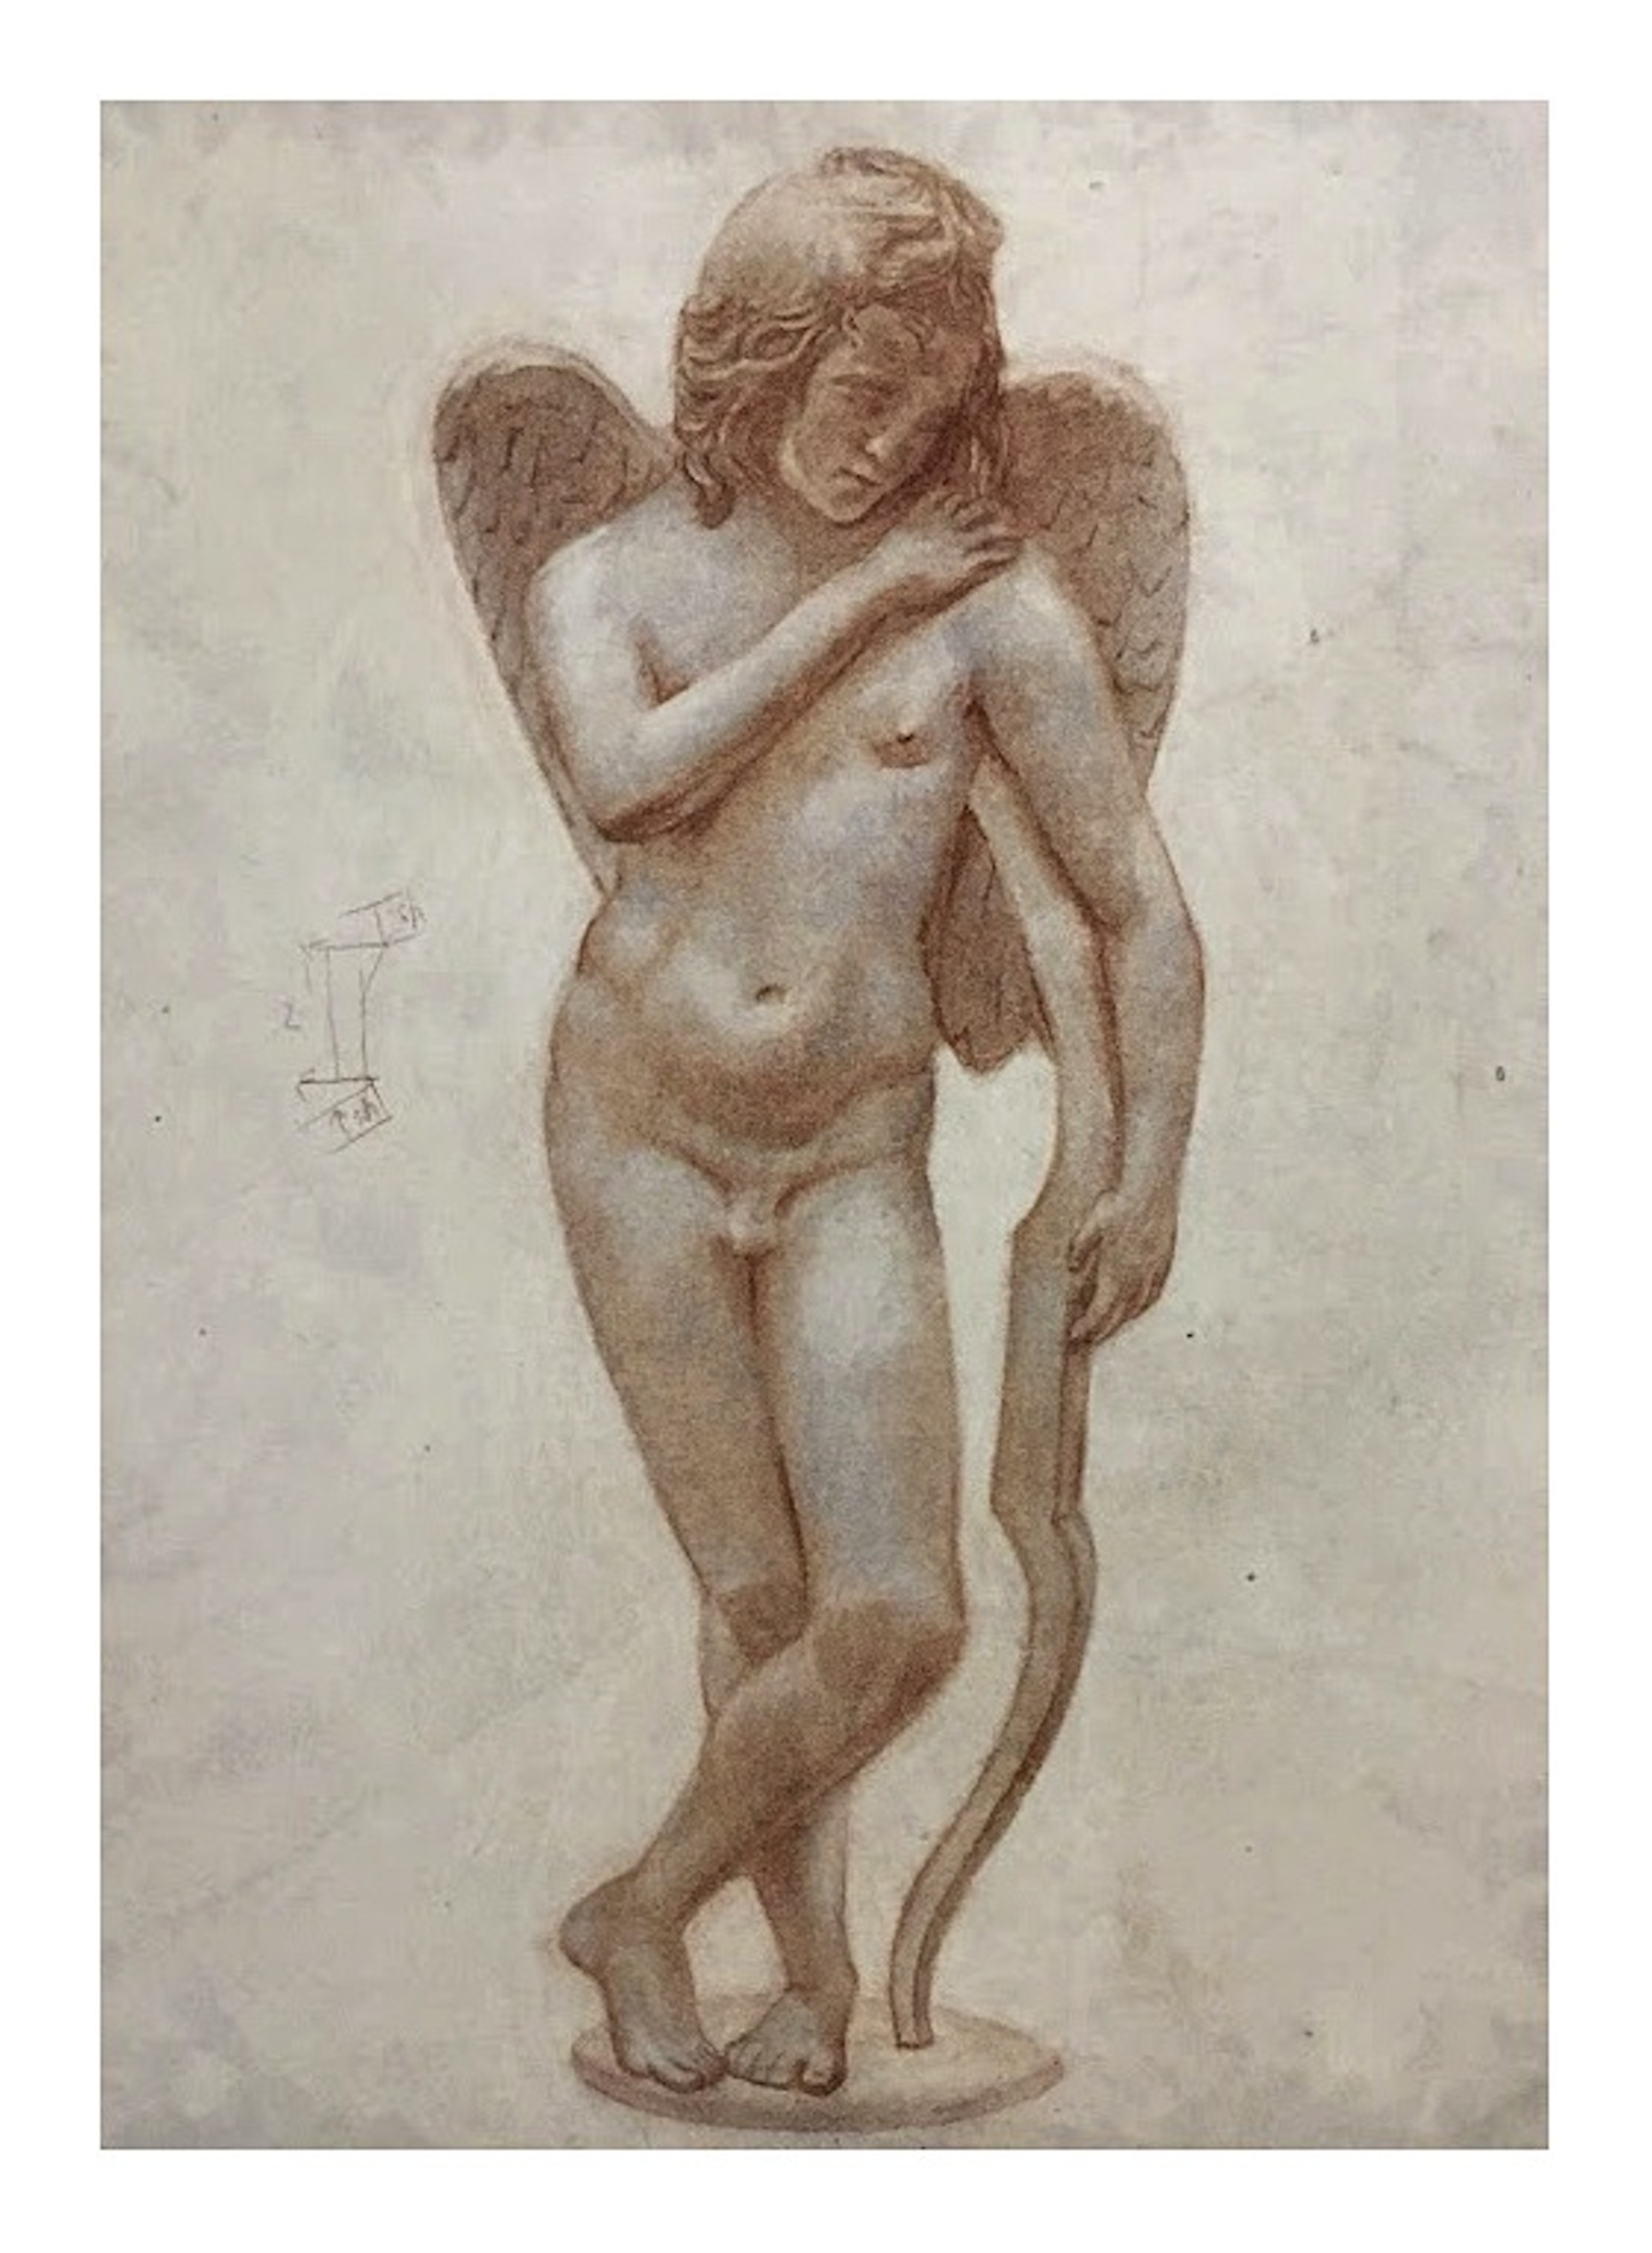 Copy based on the sculpture Cupido con l'arco (Roman art reinterpreted by Innocenzo Spinazzi, 1726-1798), soft pastel on toned paper, 40 x 30 cm, 2018